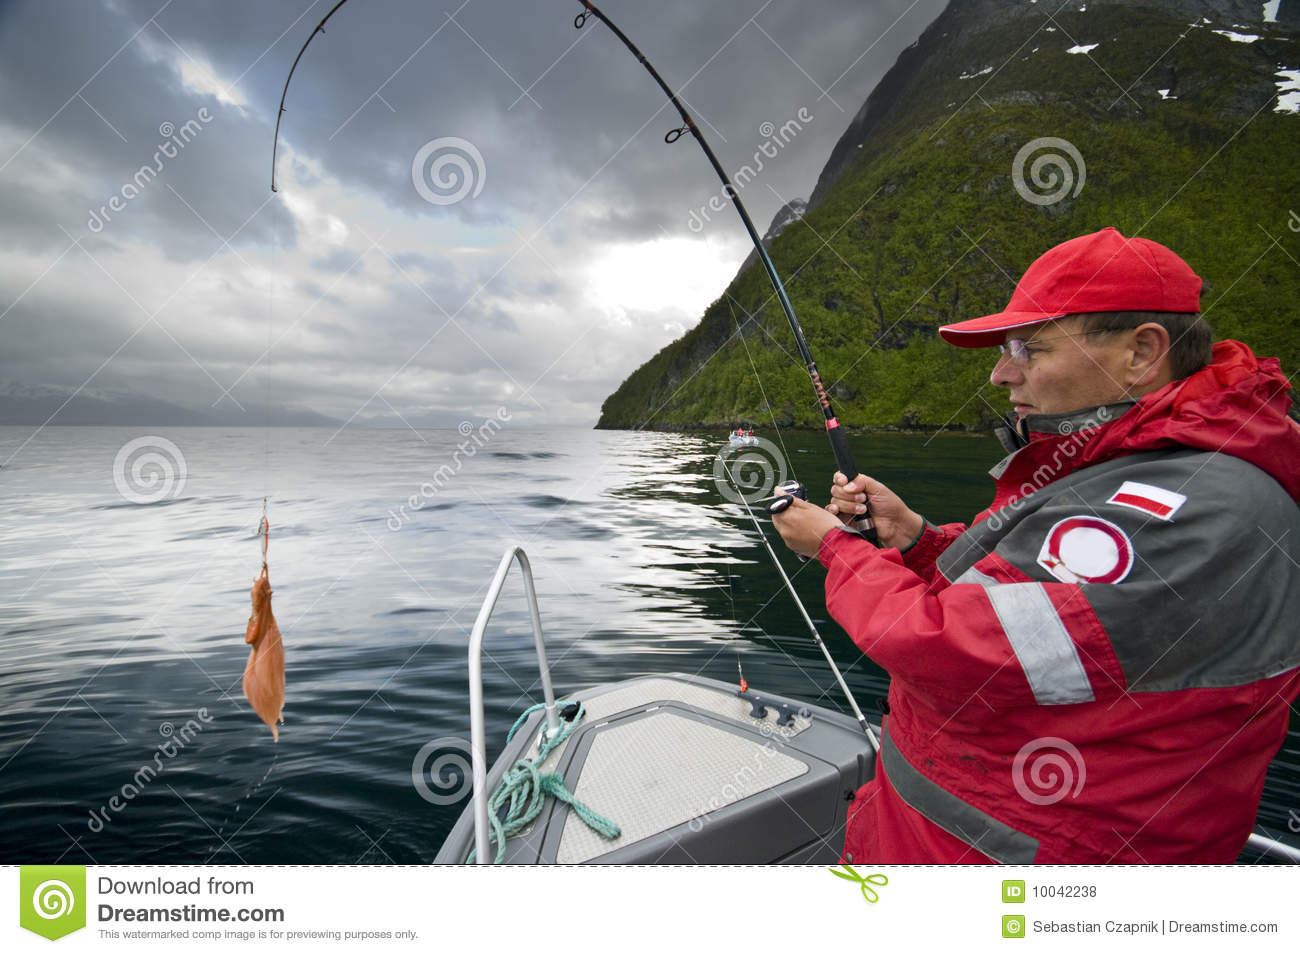 Man Catching Fish Stock Photo Image Of Outdoor Boat